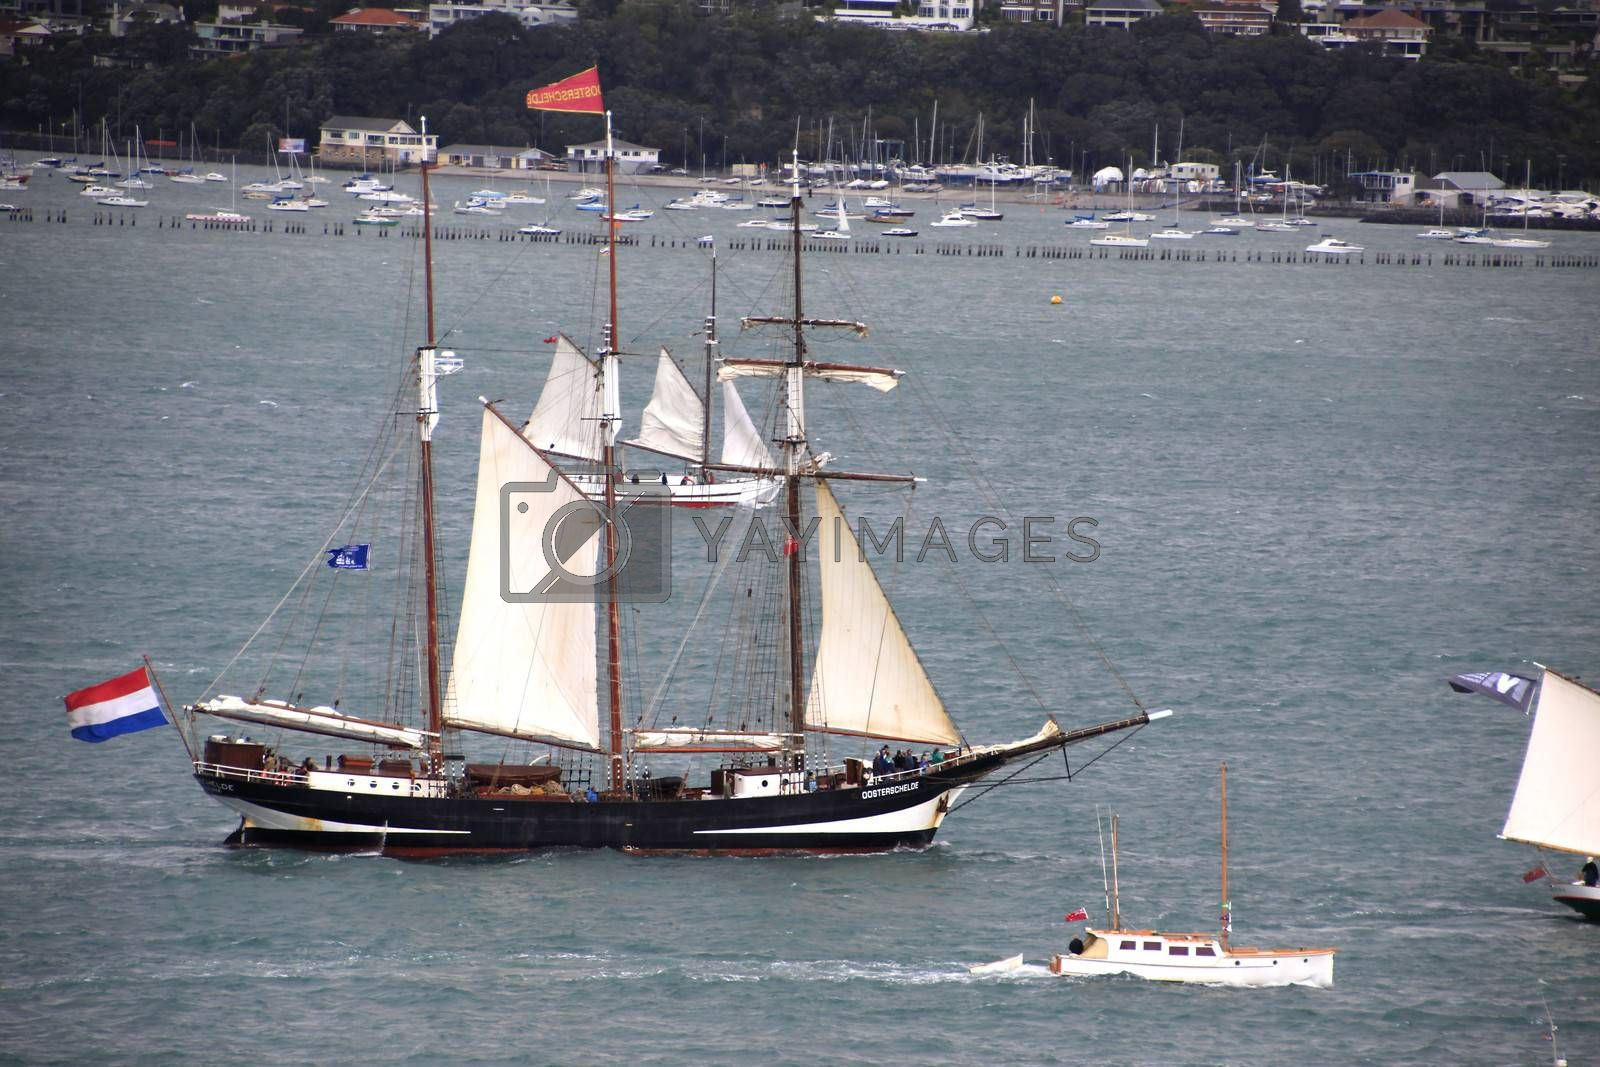 AUCKLAND-October 25: Tall ship Tecla of the Netherlands sailing in from Australia arriving in Waitemata Harbour in Auckland, New Zealand on Friday October 25, 2013.